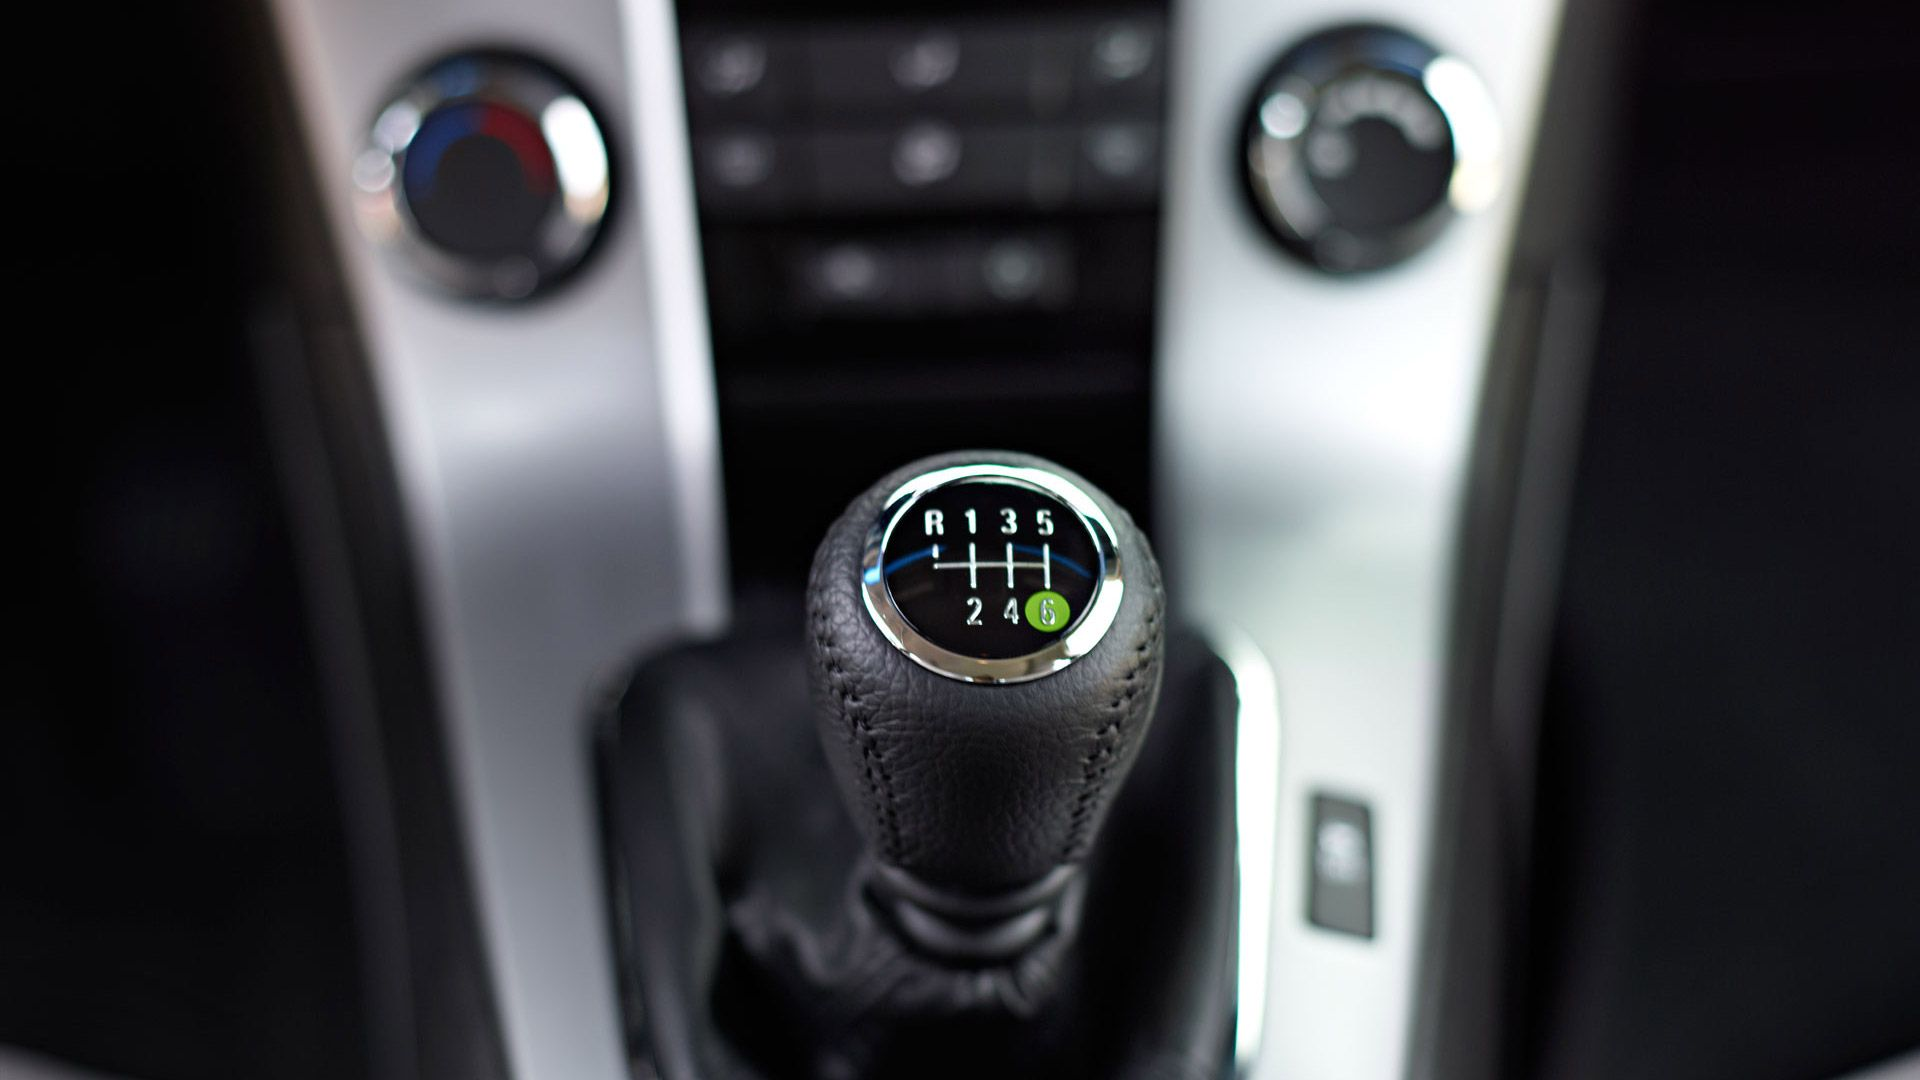 Stick shift lessons are hard to come by these days check out my stick shift lessons are hard to come by these days check out my great prices and expertise that can help you fandeluxe Image collections